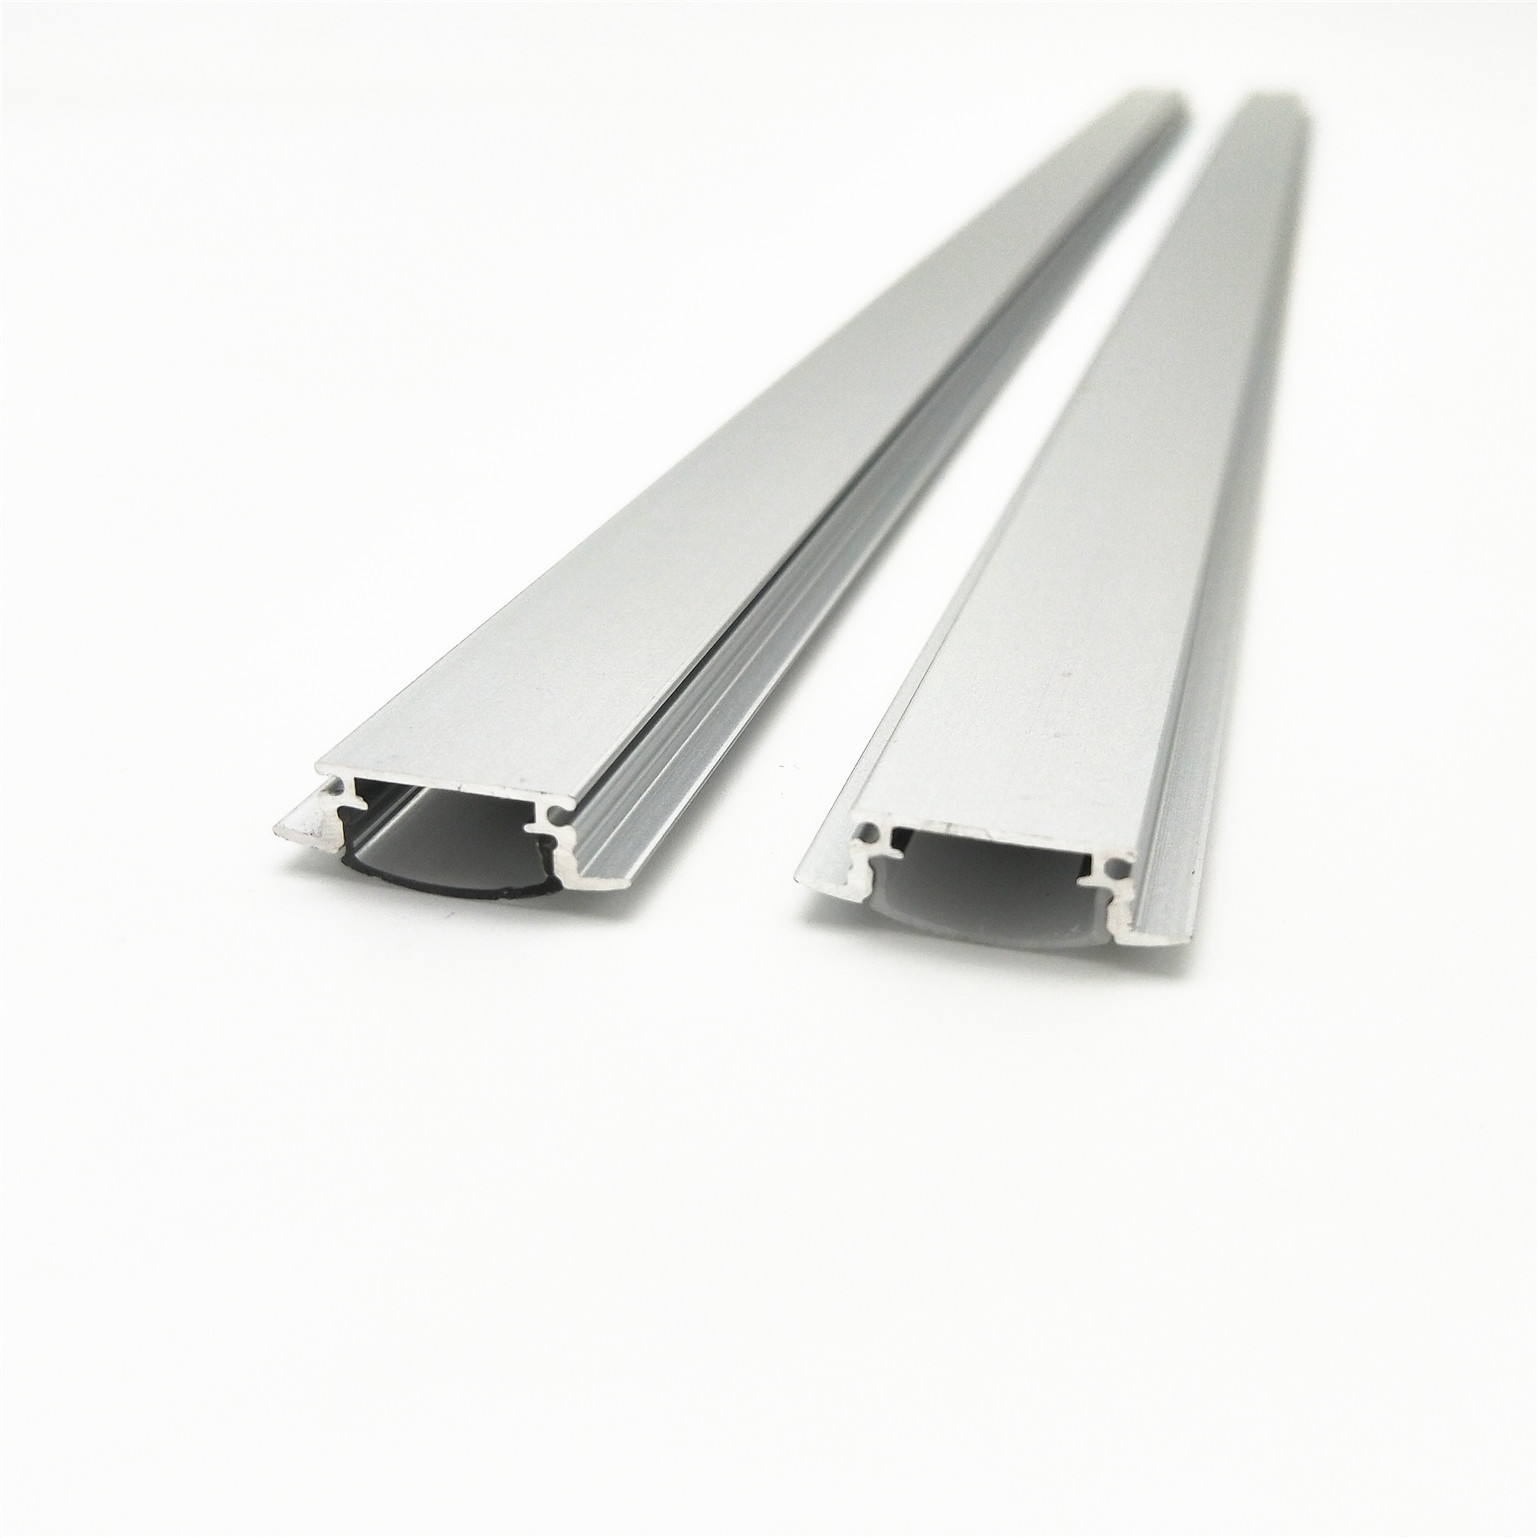 1-10sets 50cm Embed Led Aluminum Profile Bar Light Housing Mikly Clear Covers Clip Channel For 10mm PCB Strip Recess Extrusion